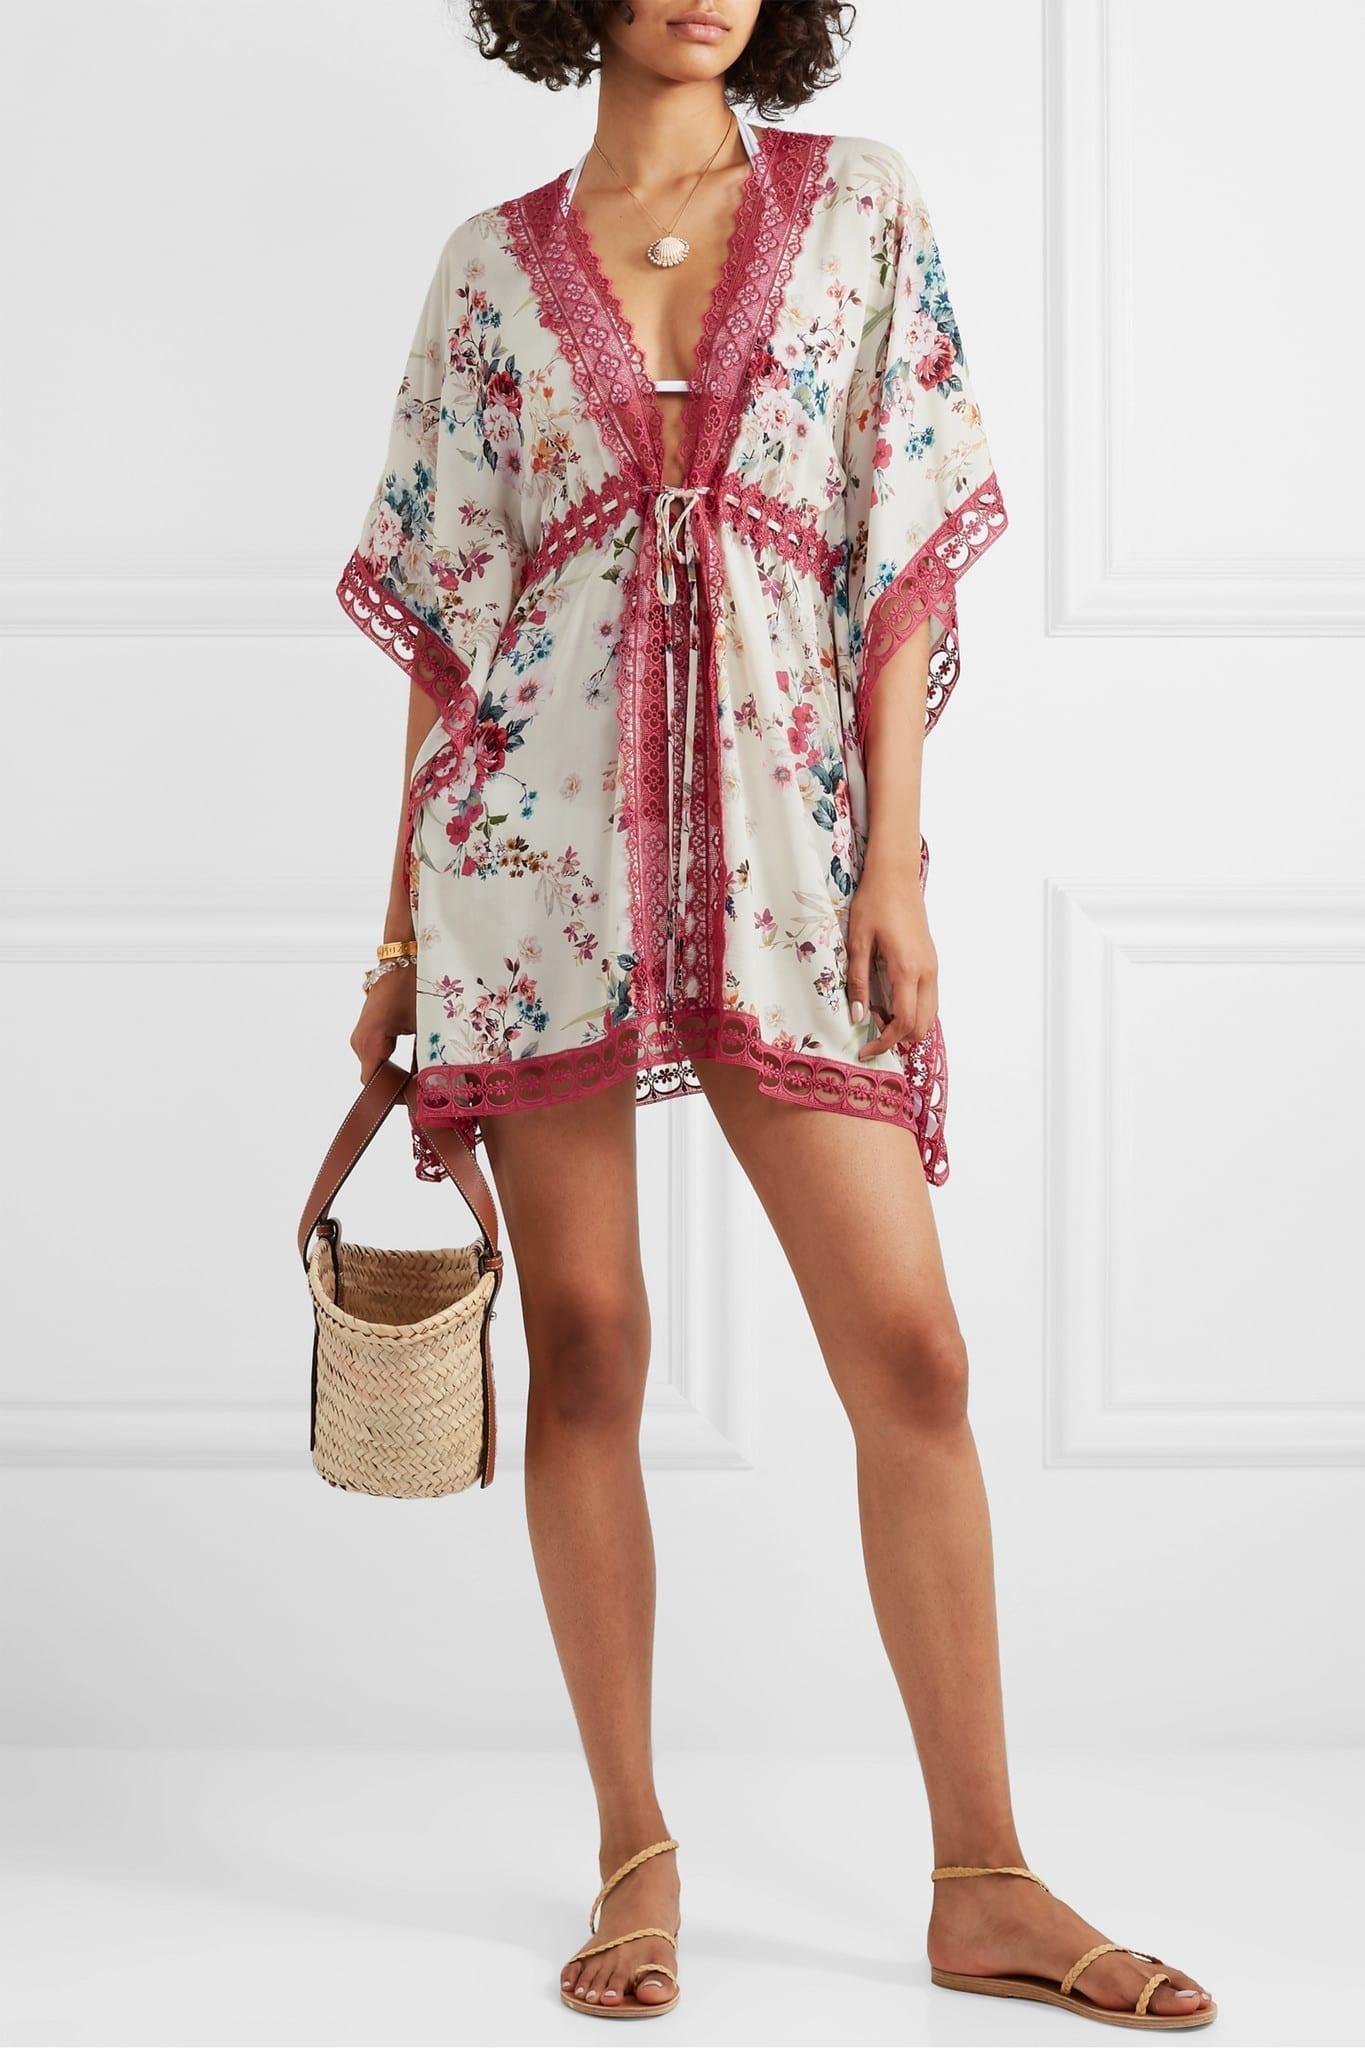 CHARO RUIZ Kayla Crocheted Lace And Floral-print Voile Kaftan Dress